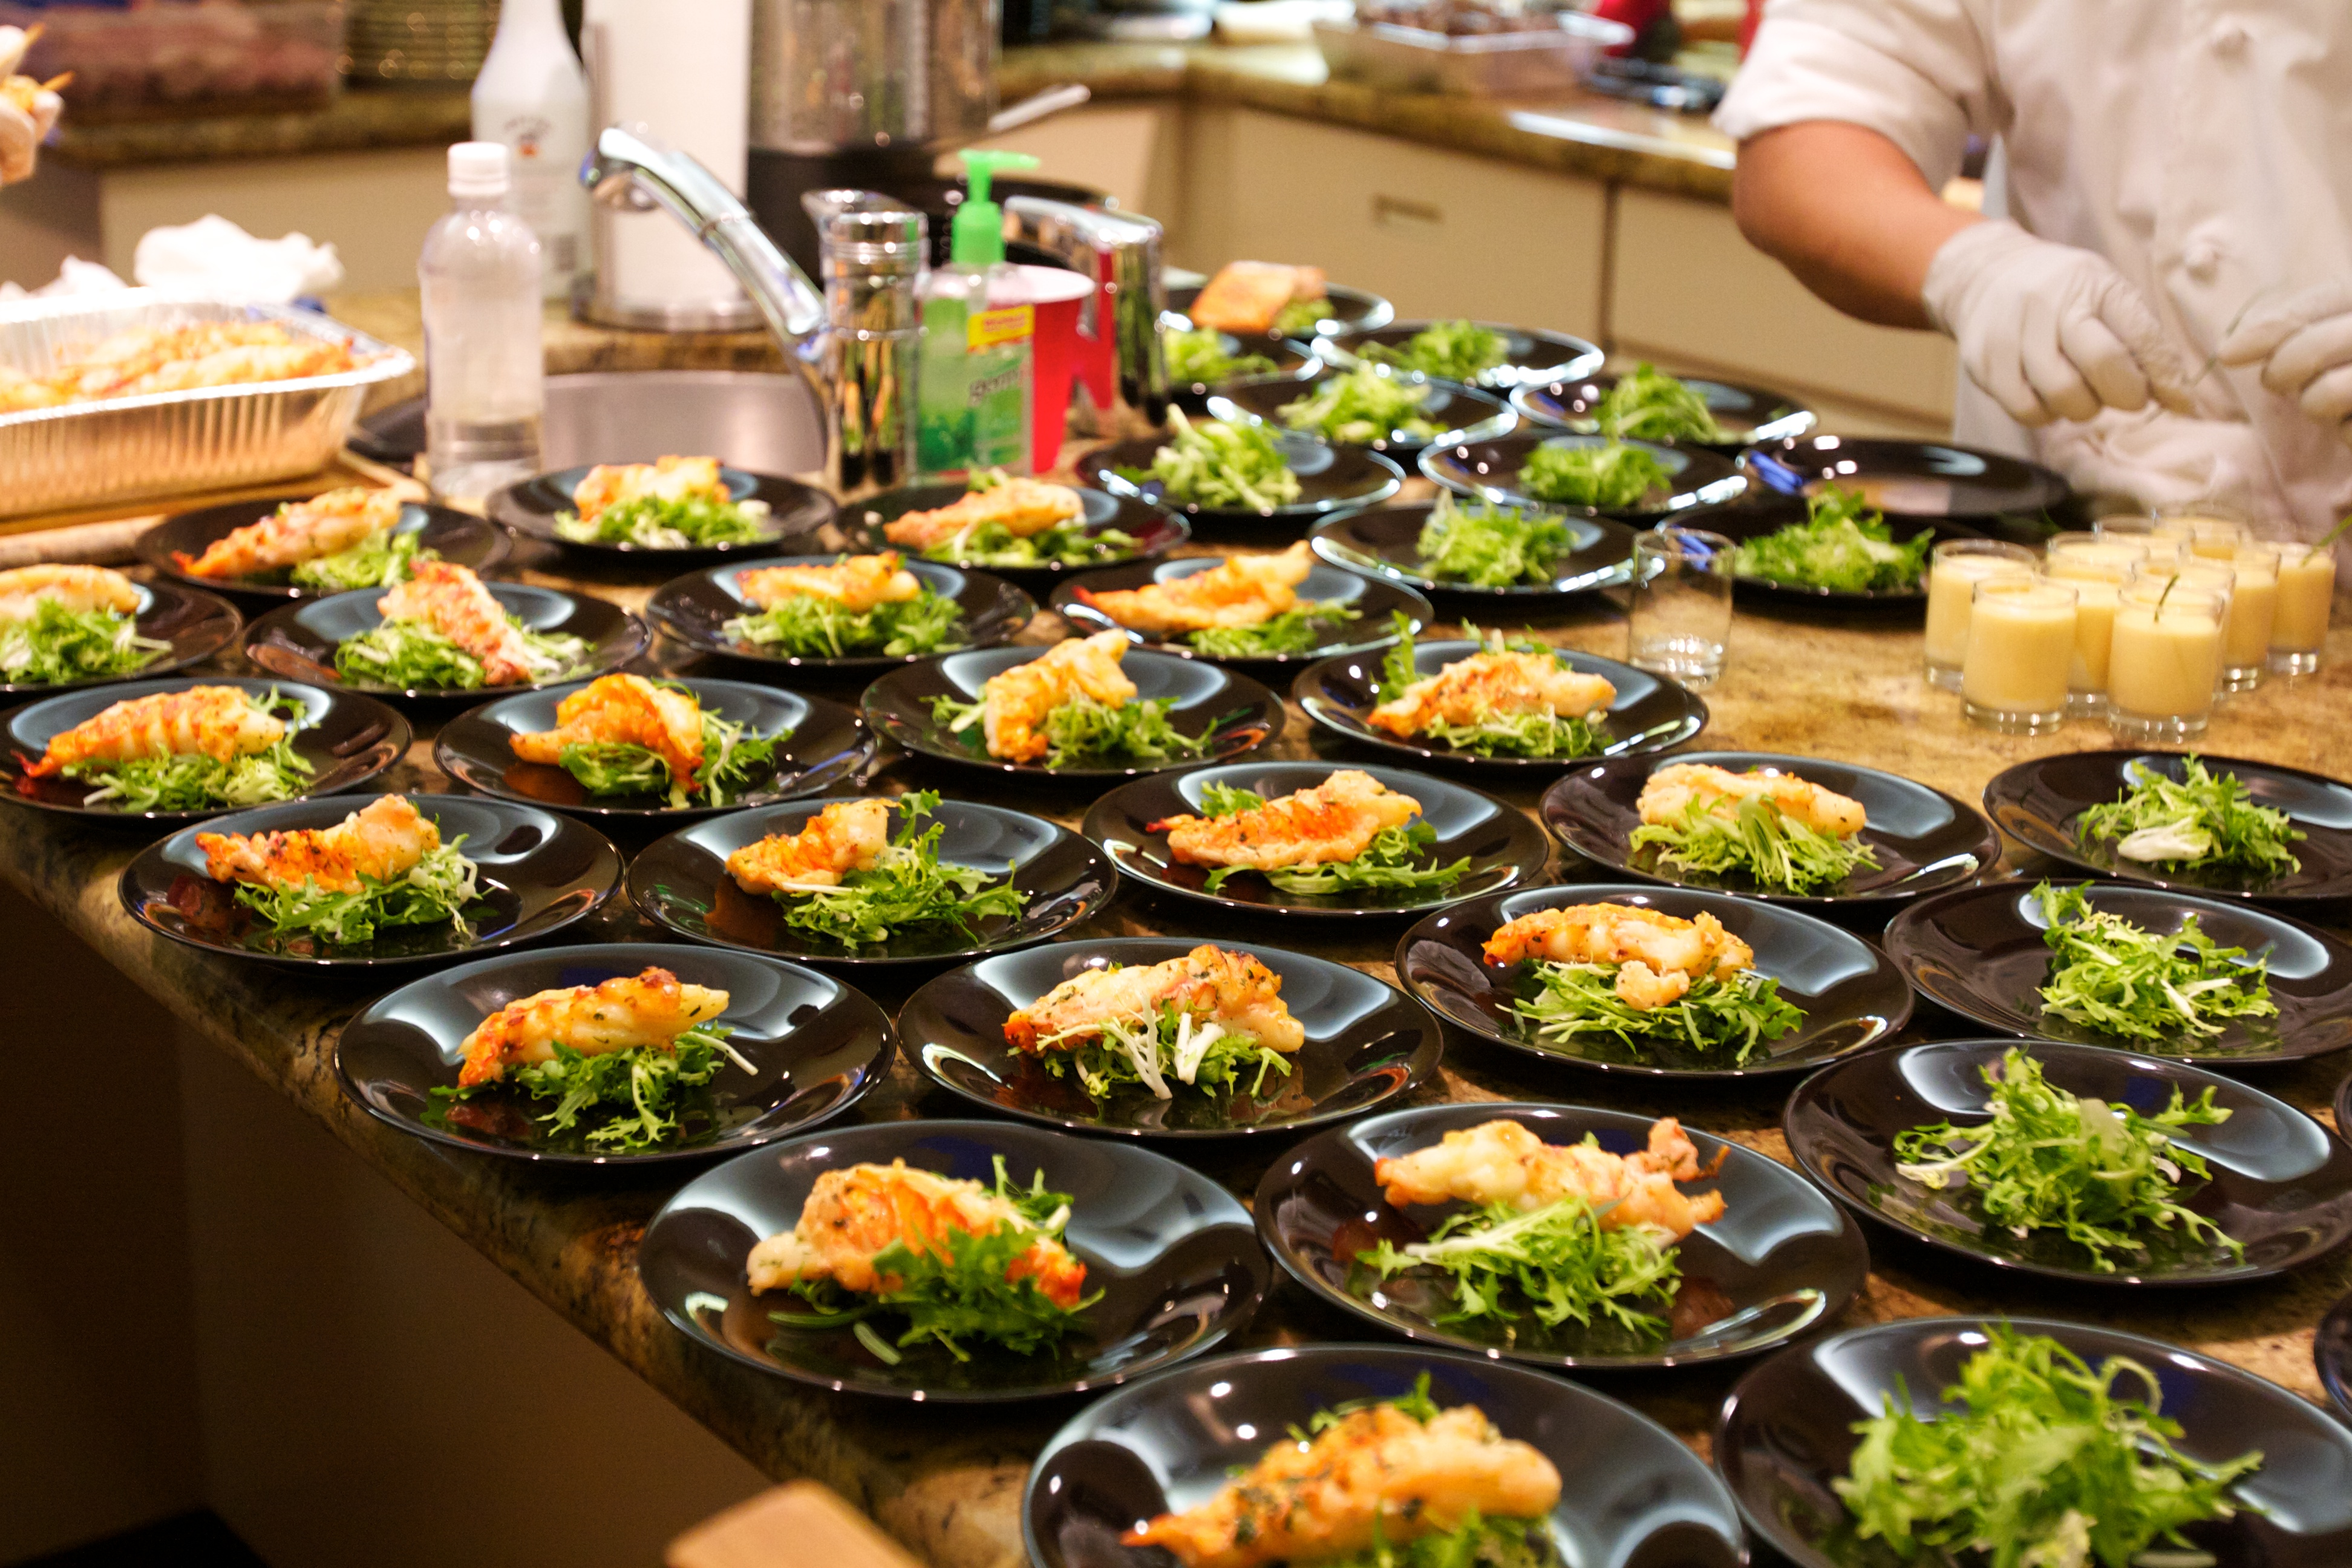 Dinner Preparations in Kitchen & Plated Dinner | Events and Catering In Hawaii